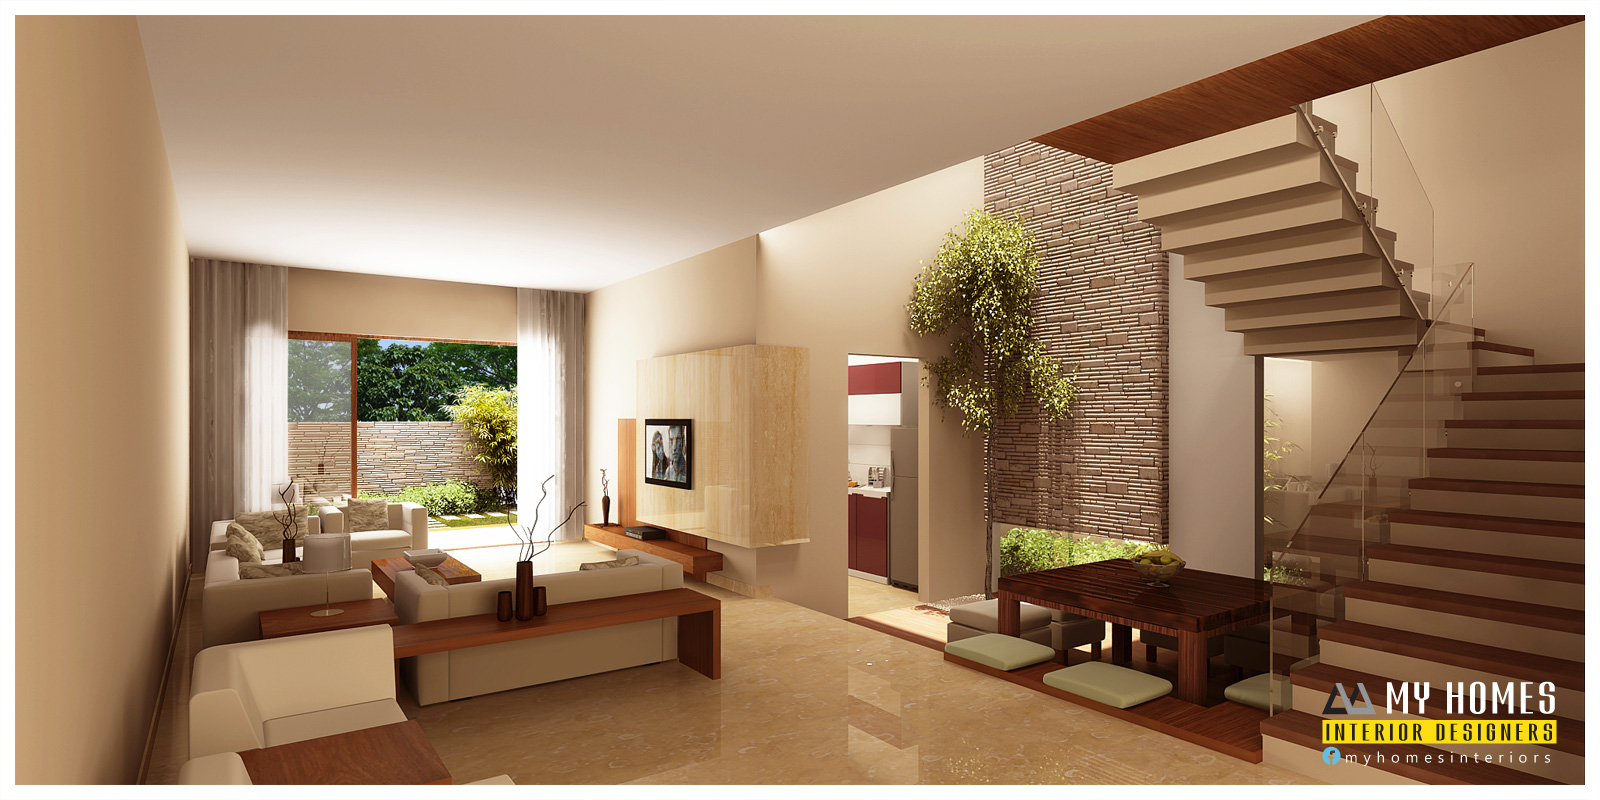 Kerala interior design ideas from designing company thrissur for Pictures of interior designs